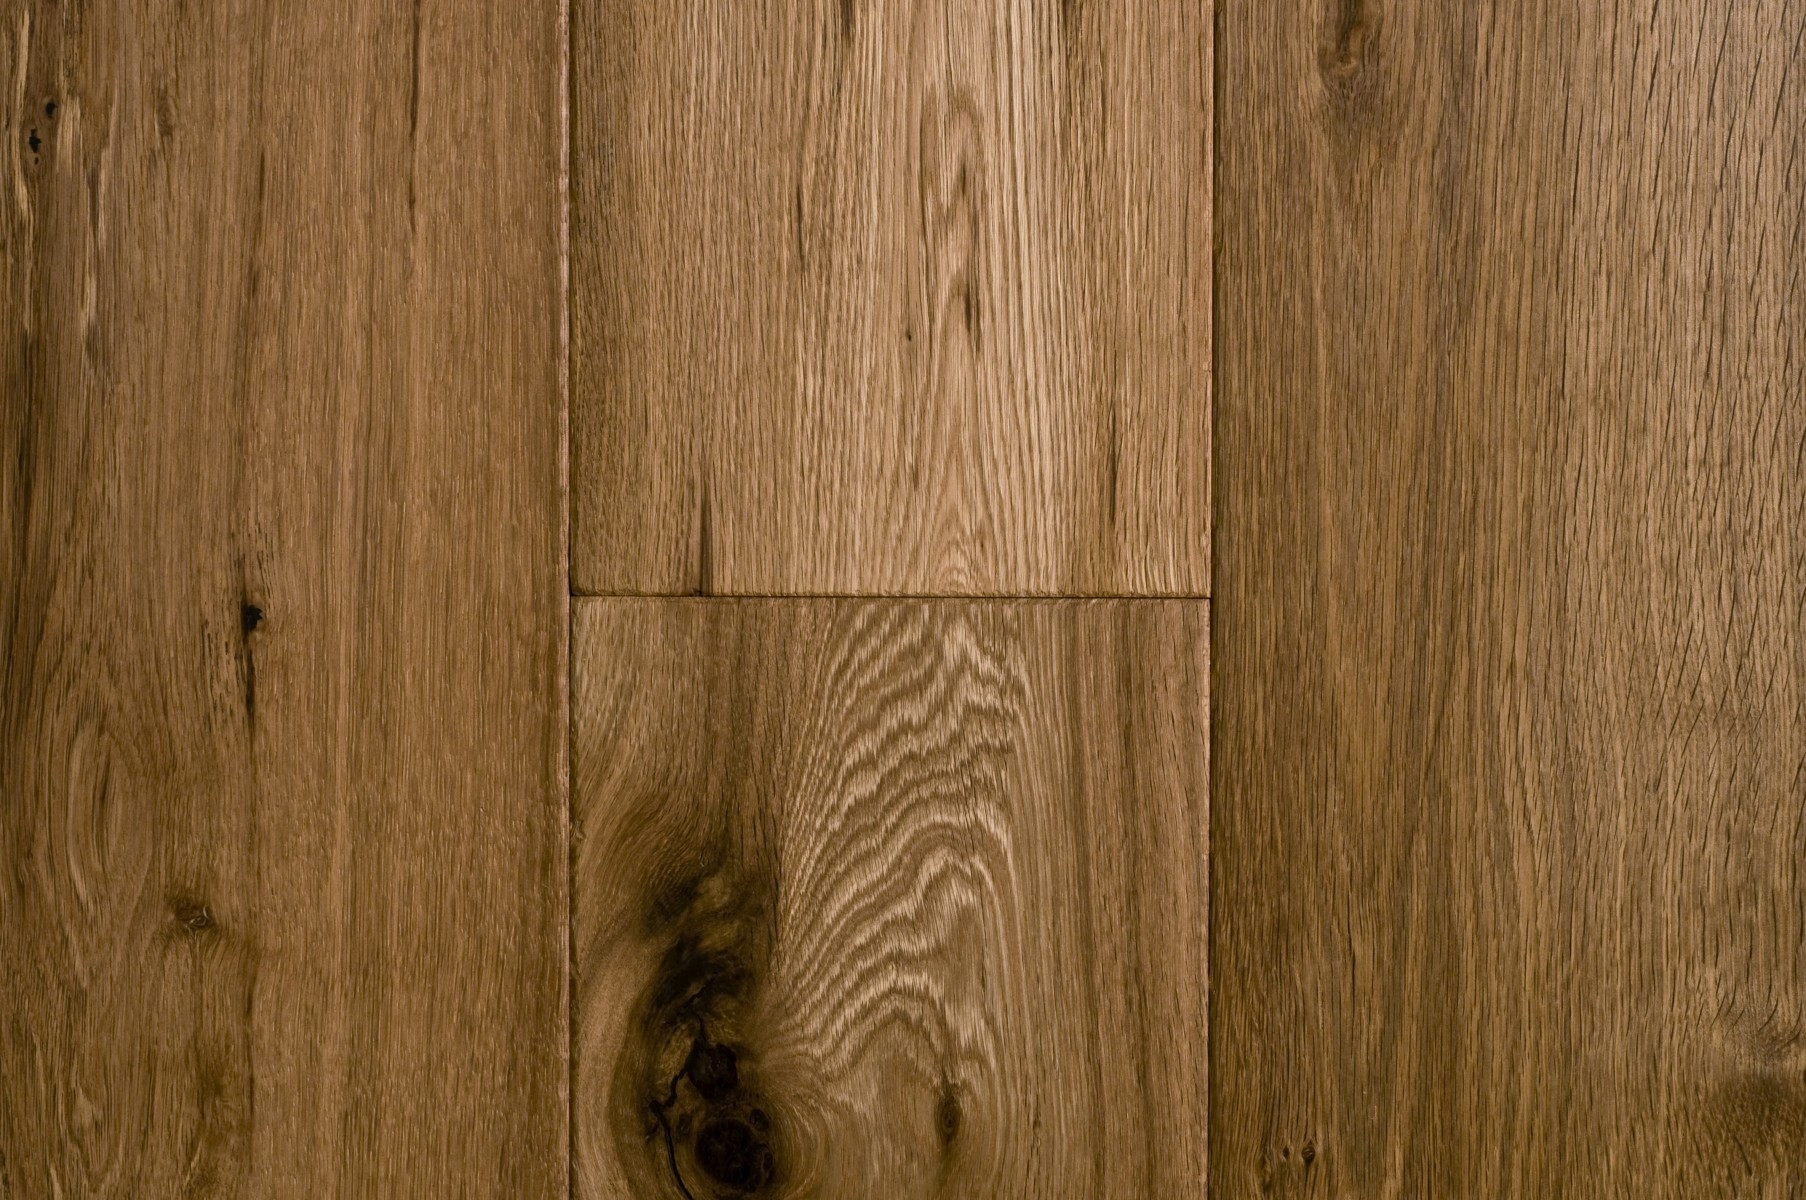 hardwood flooring installation alpharetta ga of duchateau hardwood flooring houston tx discount engineered wood in olde dutch european oak